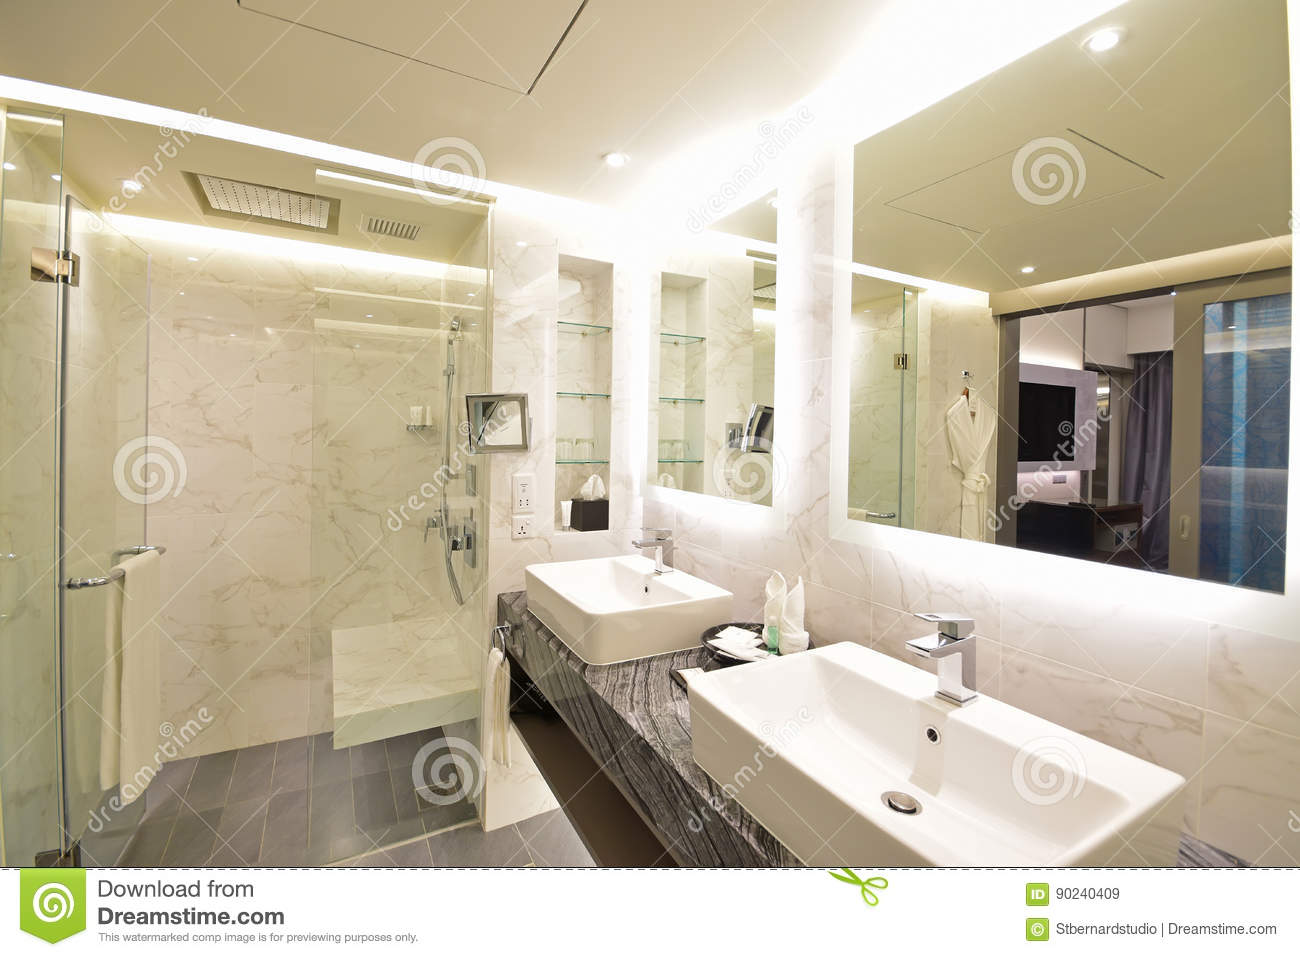 Different Angle Of Luxury Hotel Suite Bathroom With Black & White ...